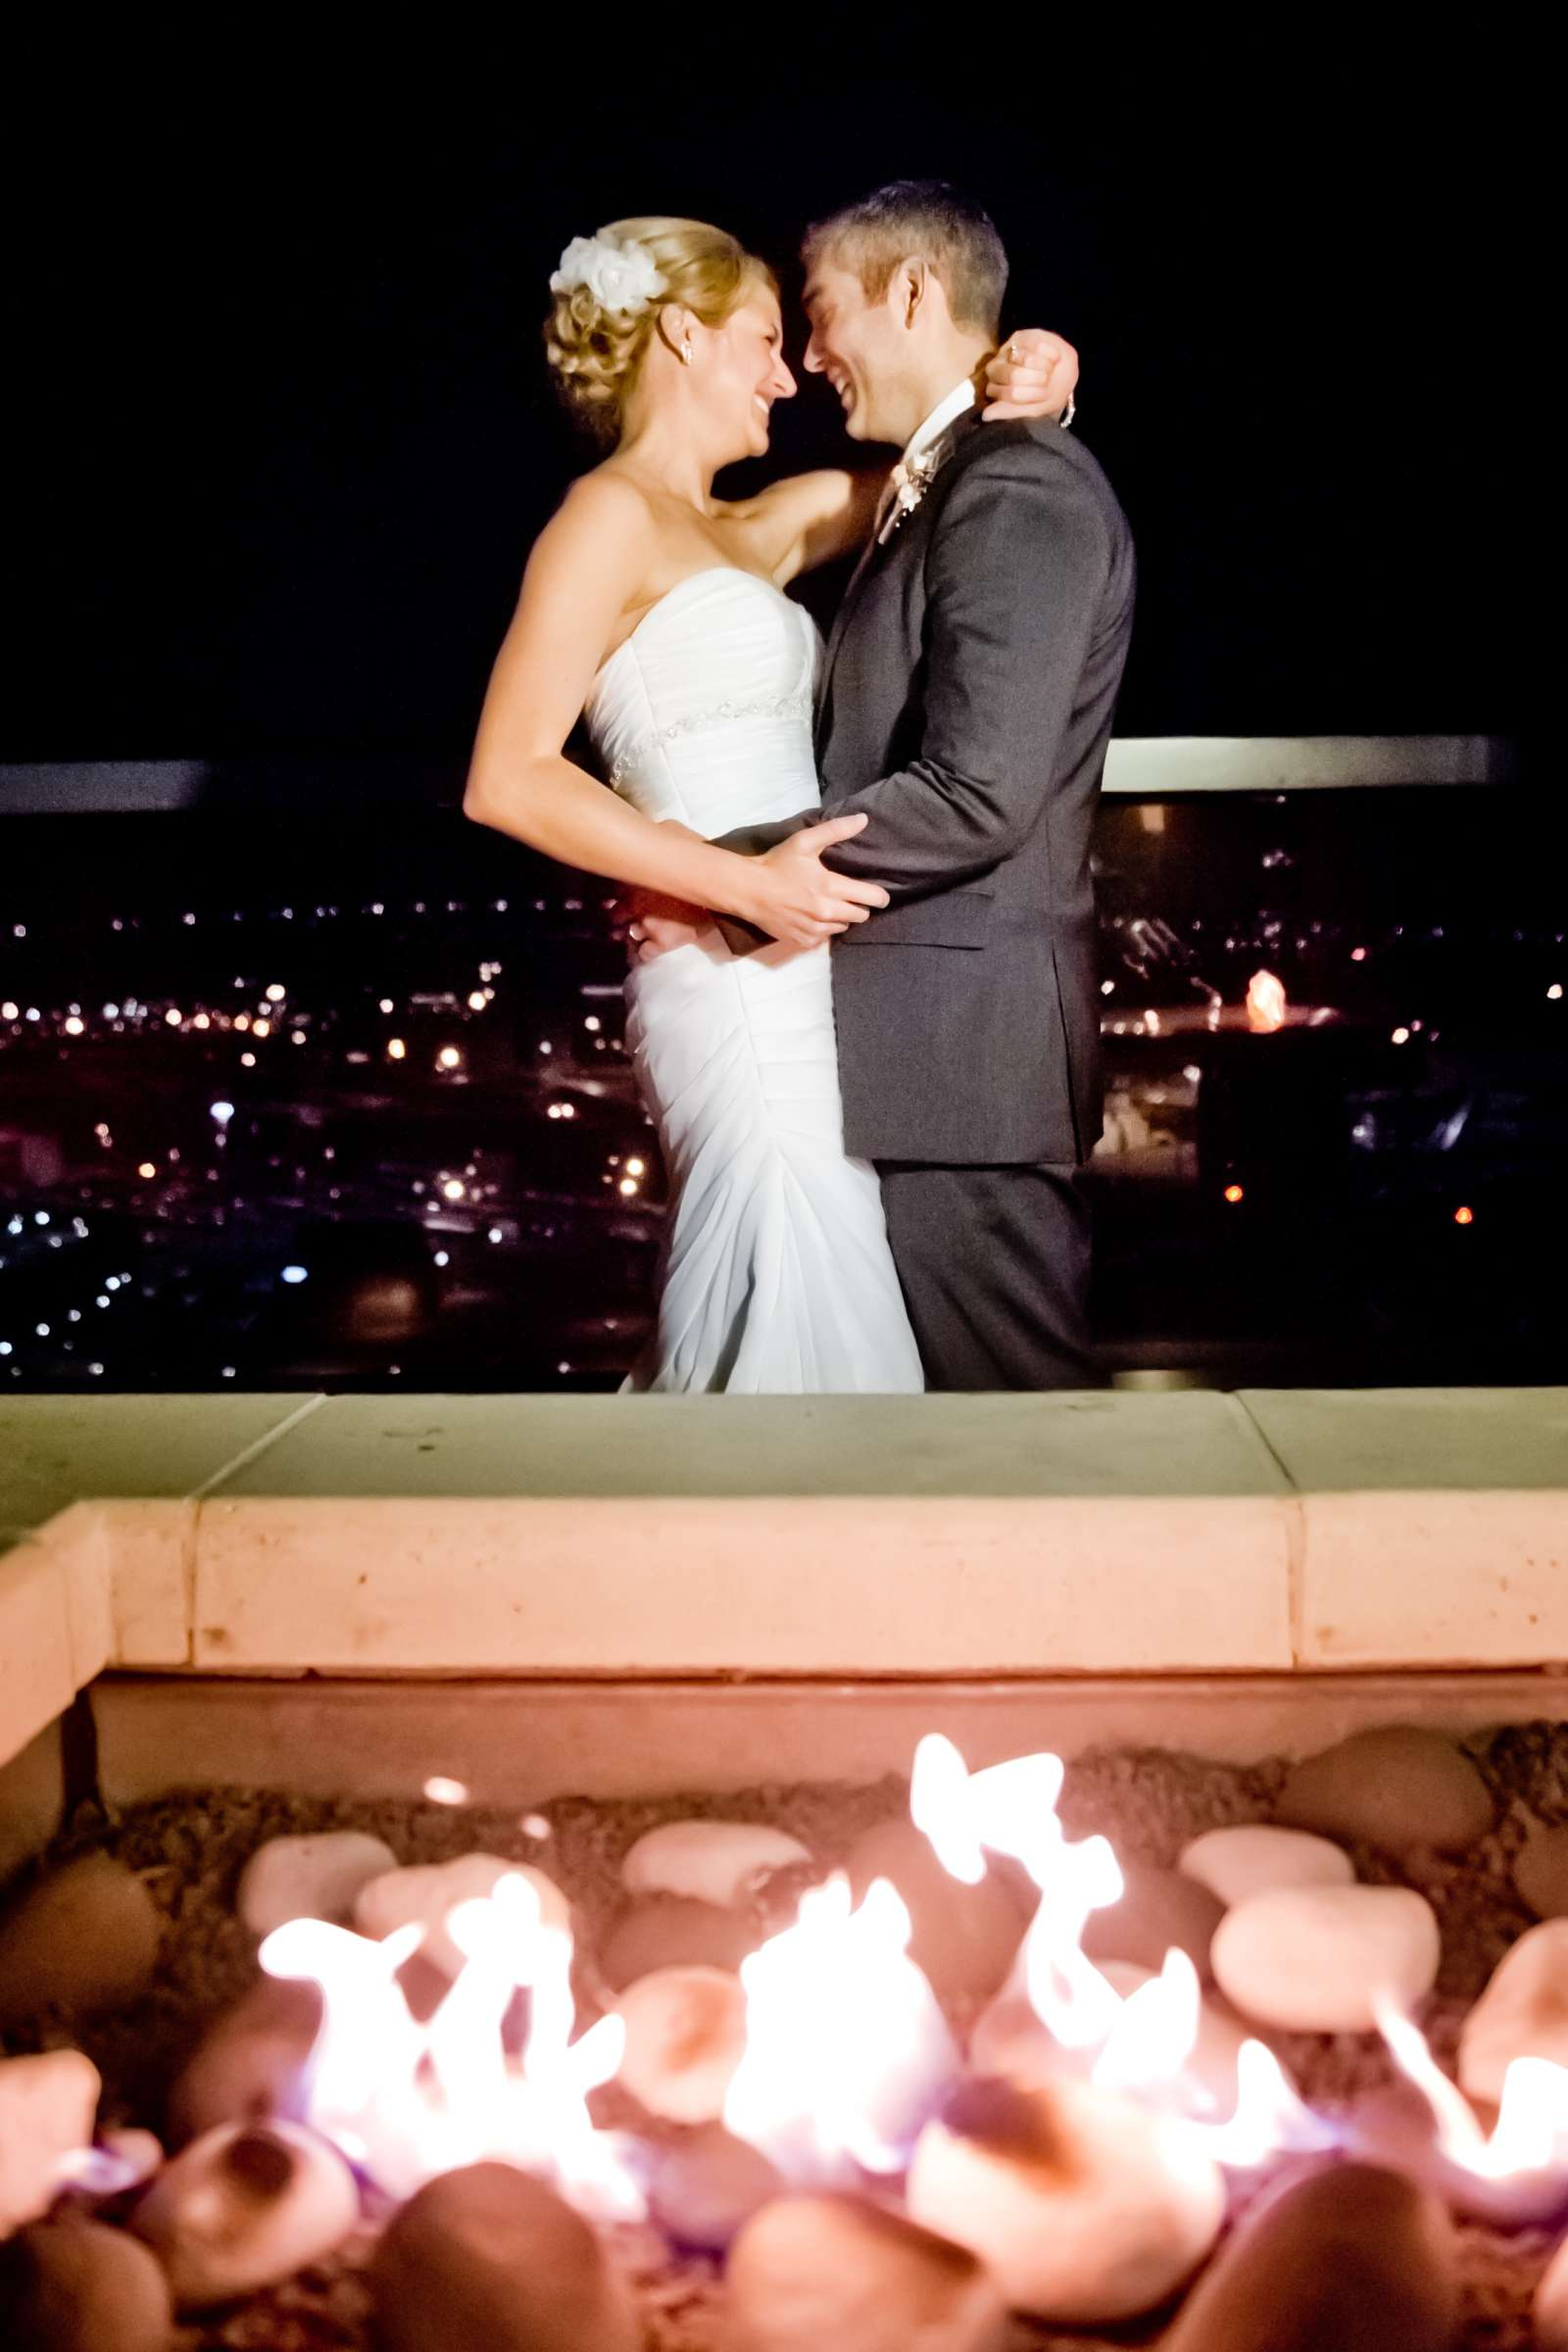 Urban Downtown at Ultimate Skybox Wedding, Chelsea and Frank Wedding Photo #17 by True Photography